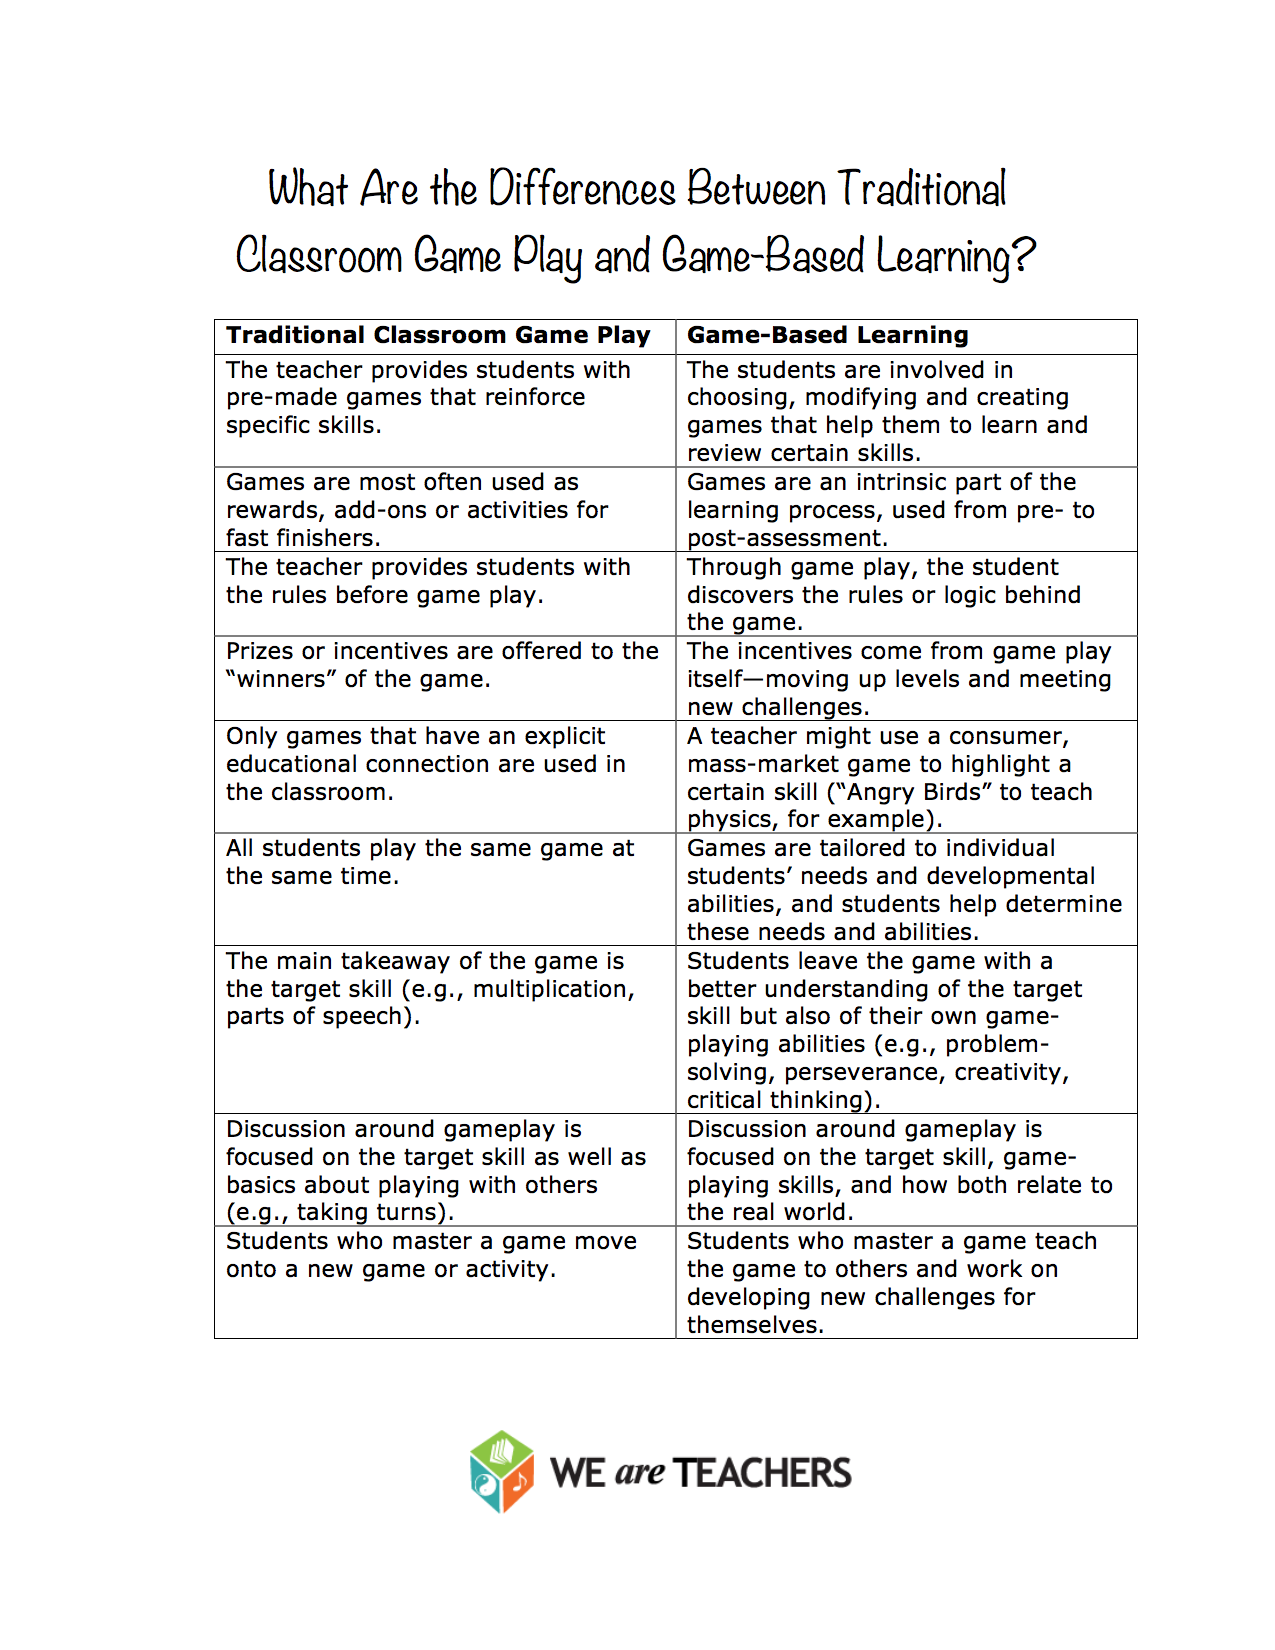 gjmueller:   When we talk about game-based learning, what do we really mean? How is it different from the games you've been incorporating in your classroom all these years? In general, game-based learning means making gaming a deeper, more intrinsic part of the learning process.  What's your take on the game-based learning trend?